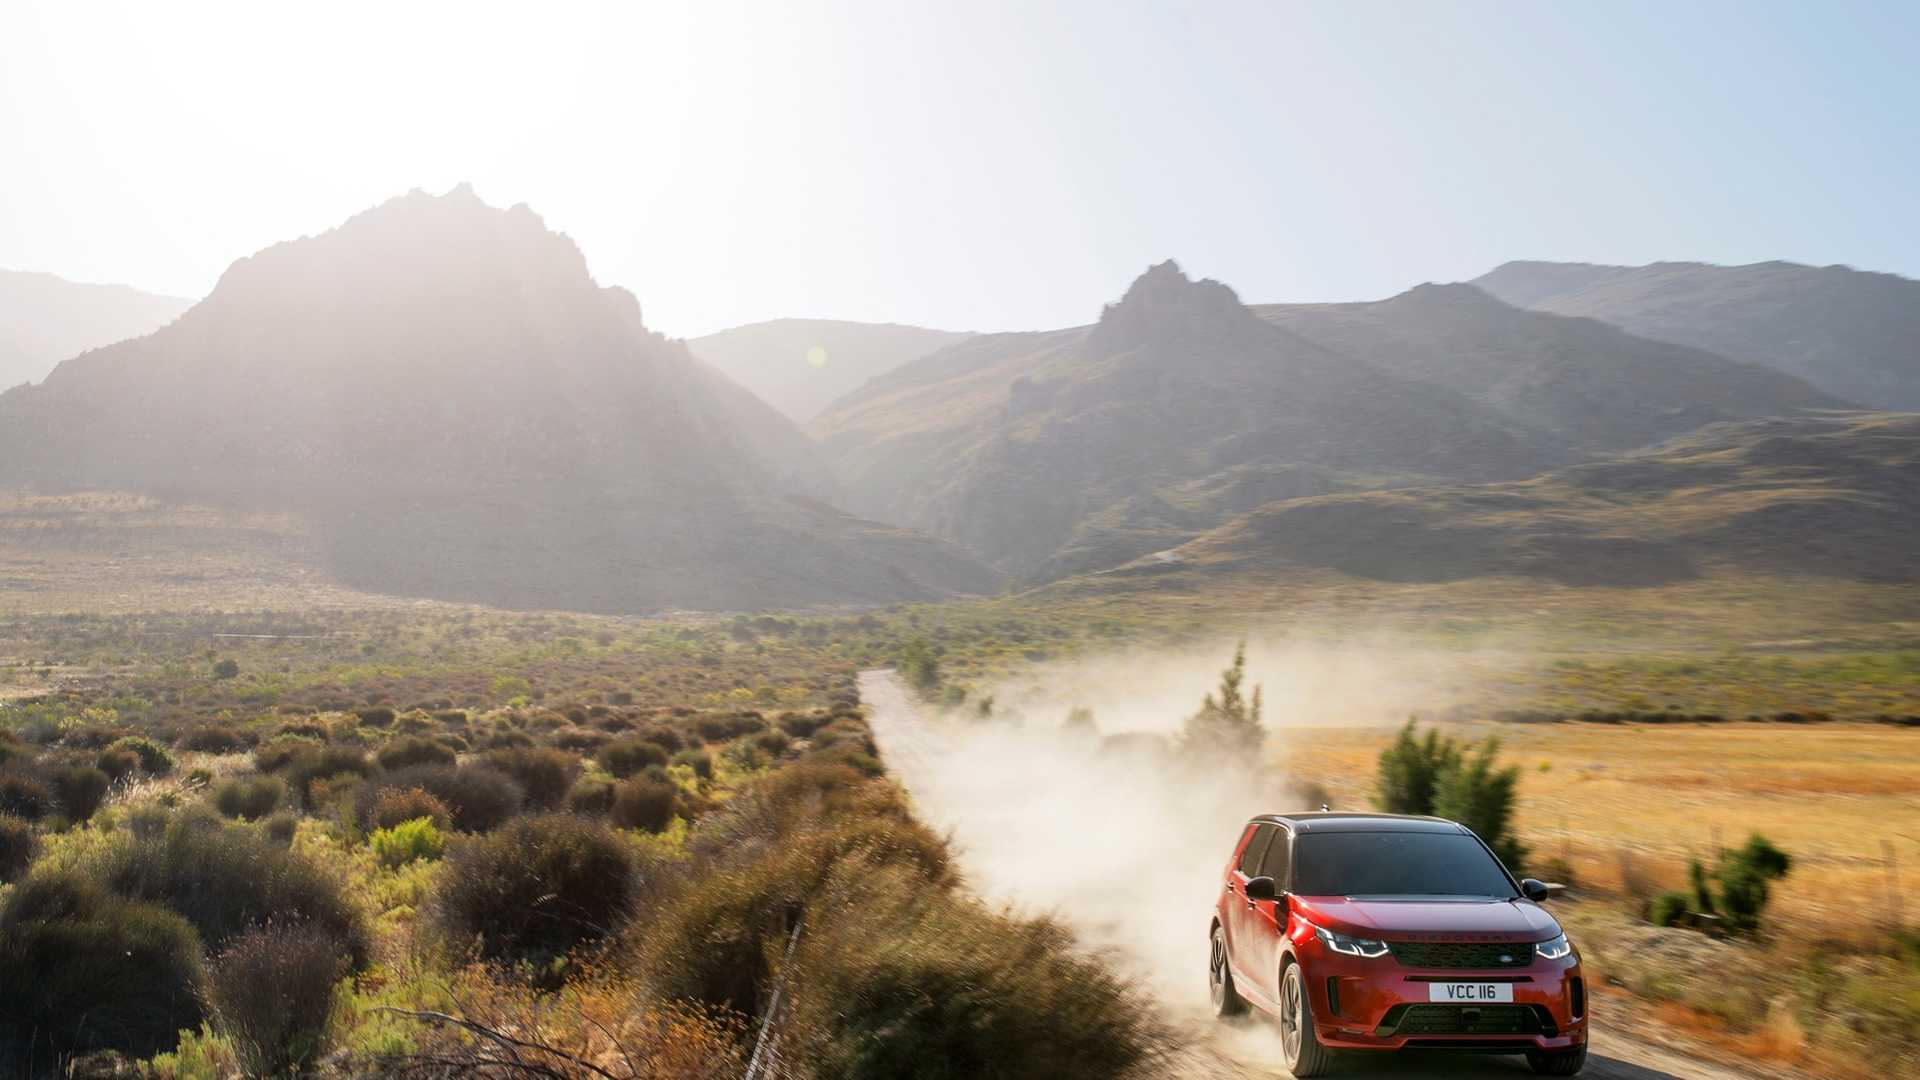 2020 Land Rover Discovery Sport Off-Road Wallpaper (15)